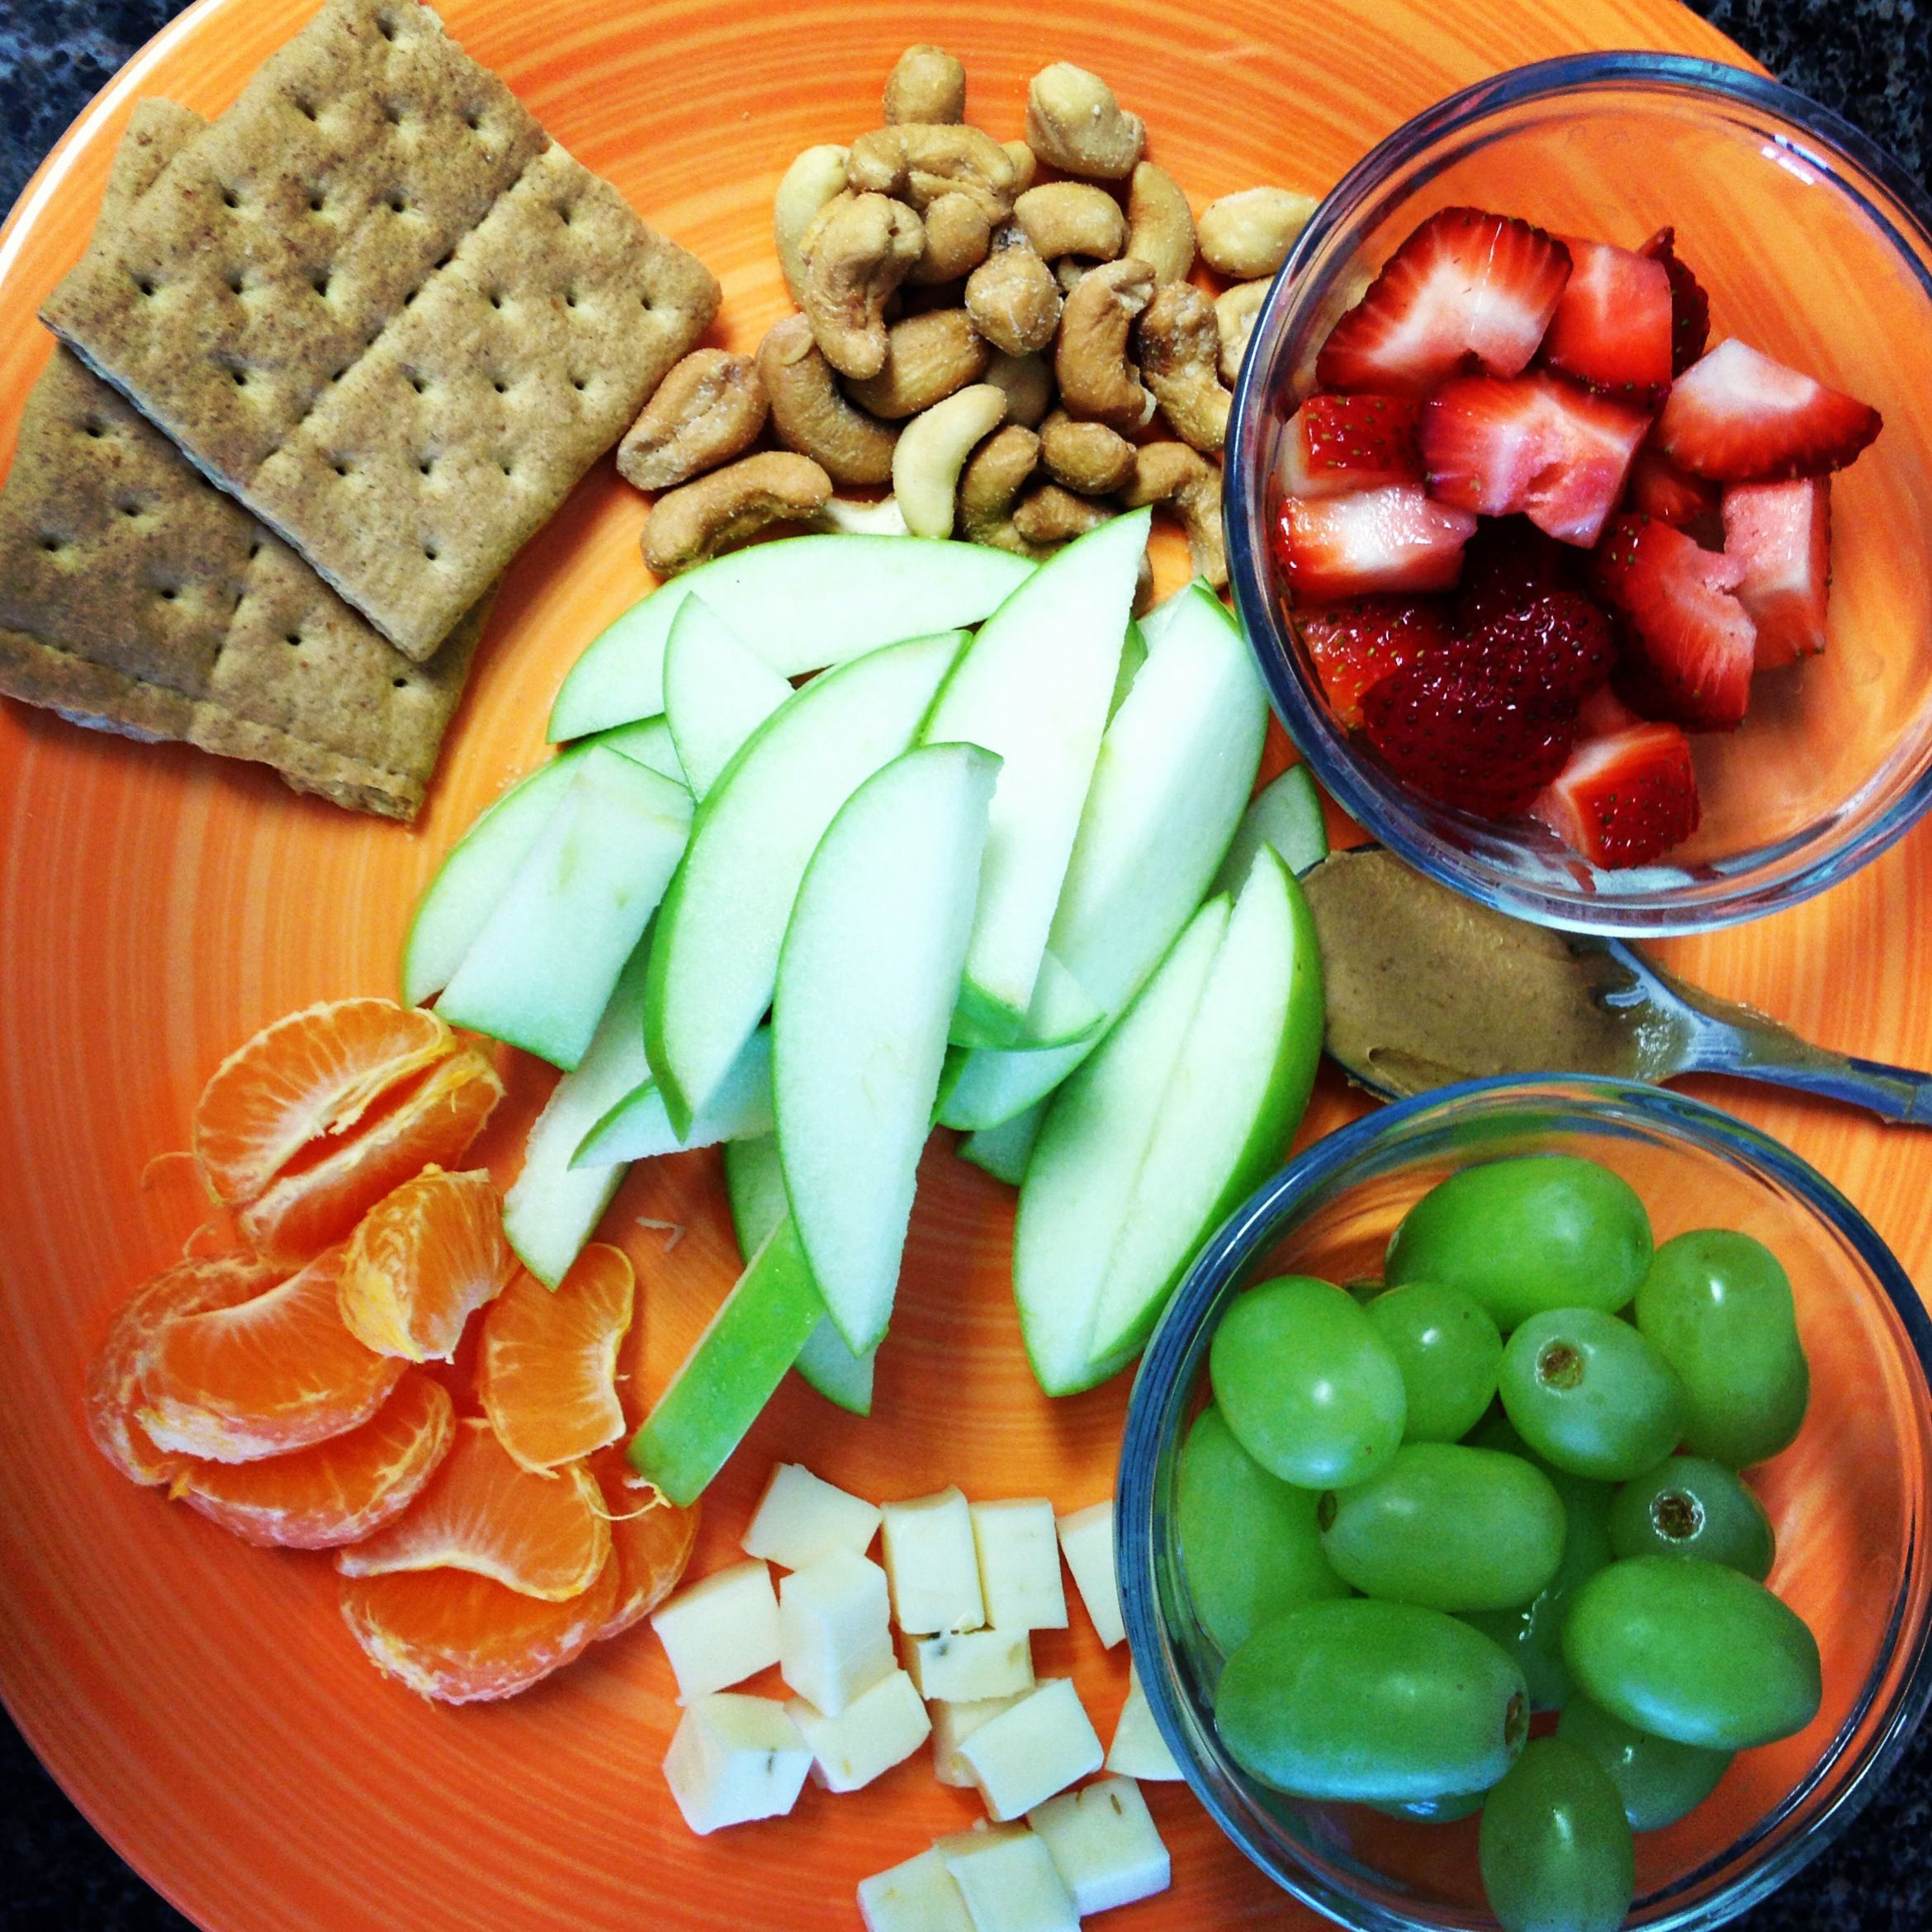 Healthy Eating and Clean Lunch-Perfect for the Office or days that a sandwich just isn't cutting it. Add some veggies in it too and make it a party! Yum!